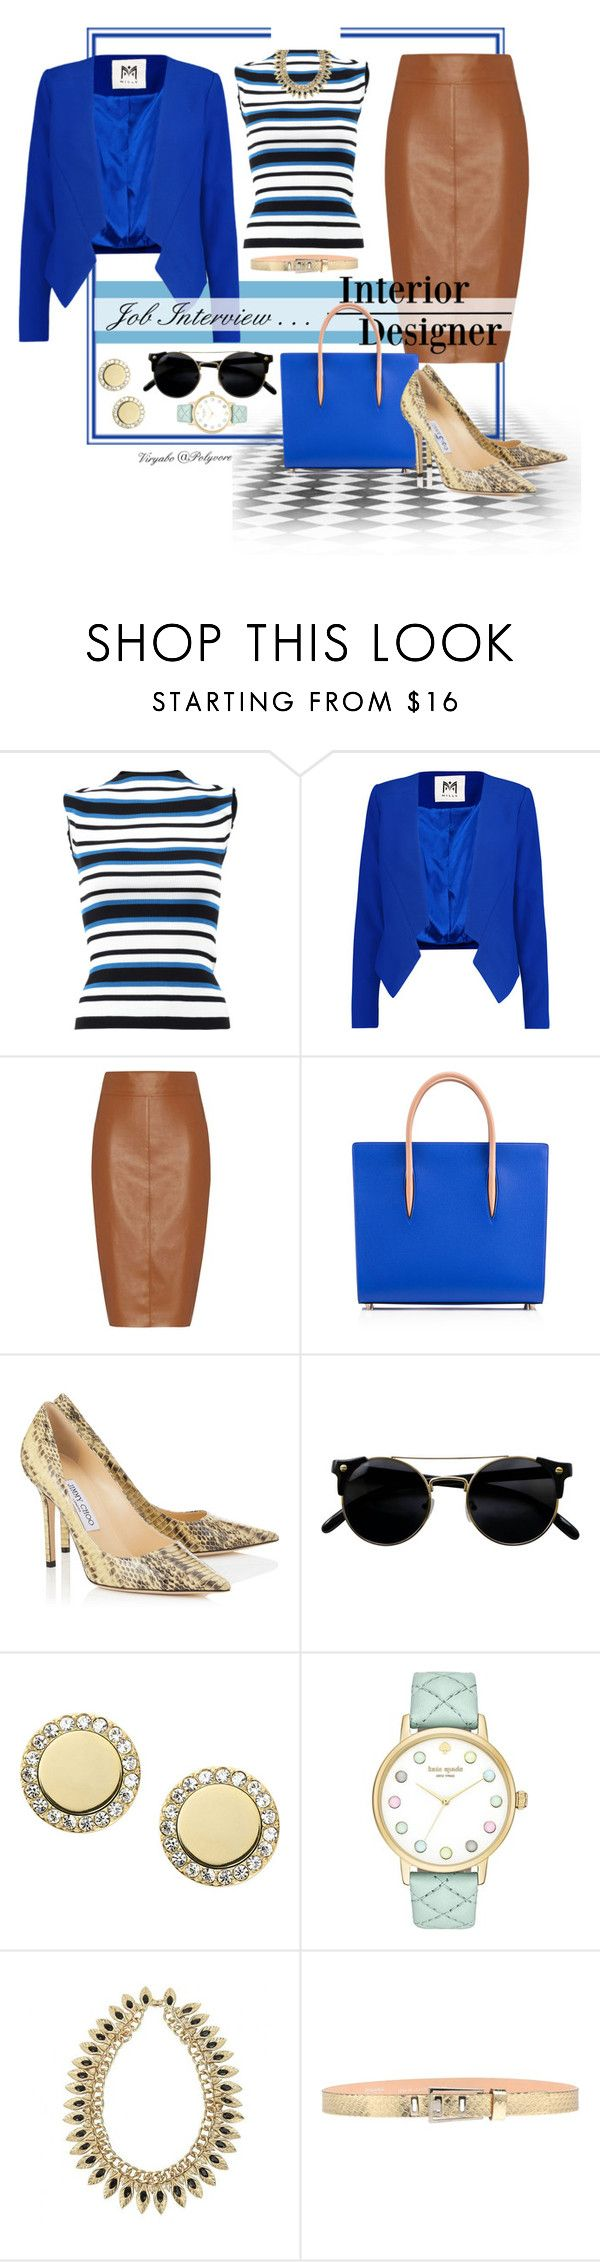 """""""Outfit for Job Interview"""" by viryabo ❤ liked on Polyvore featuring Dolce&Gabbana, Milly, Bailey 44, Christian Louboutin, FOSSIL, Kate Spade, Dsquared2, contest, contestentry and fashionset"""